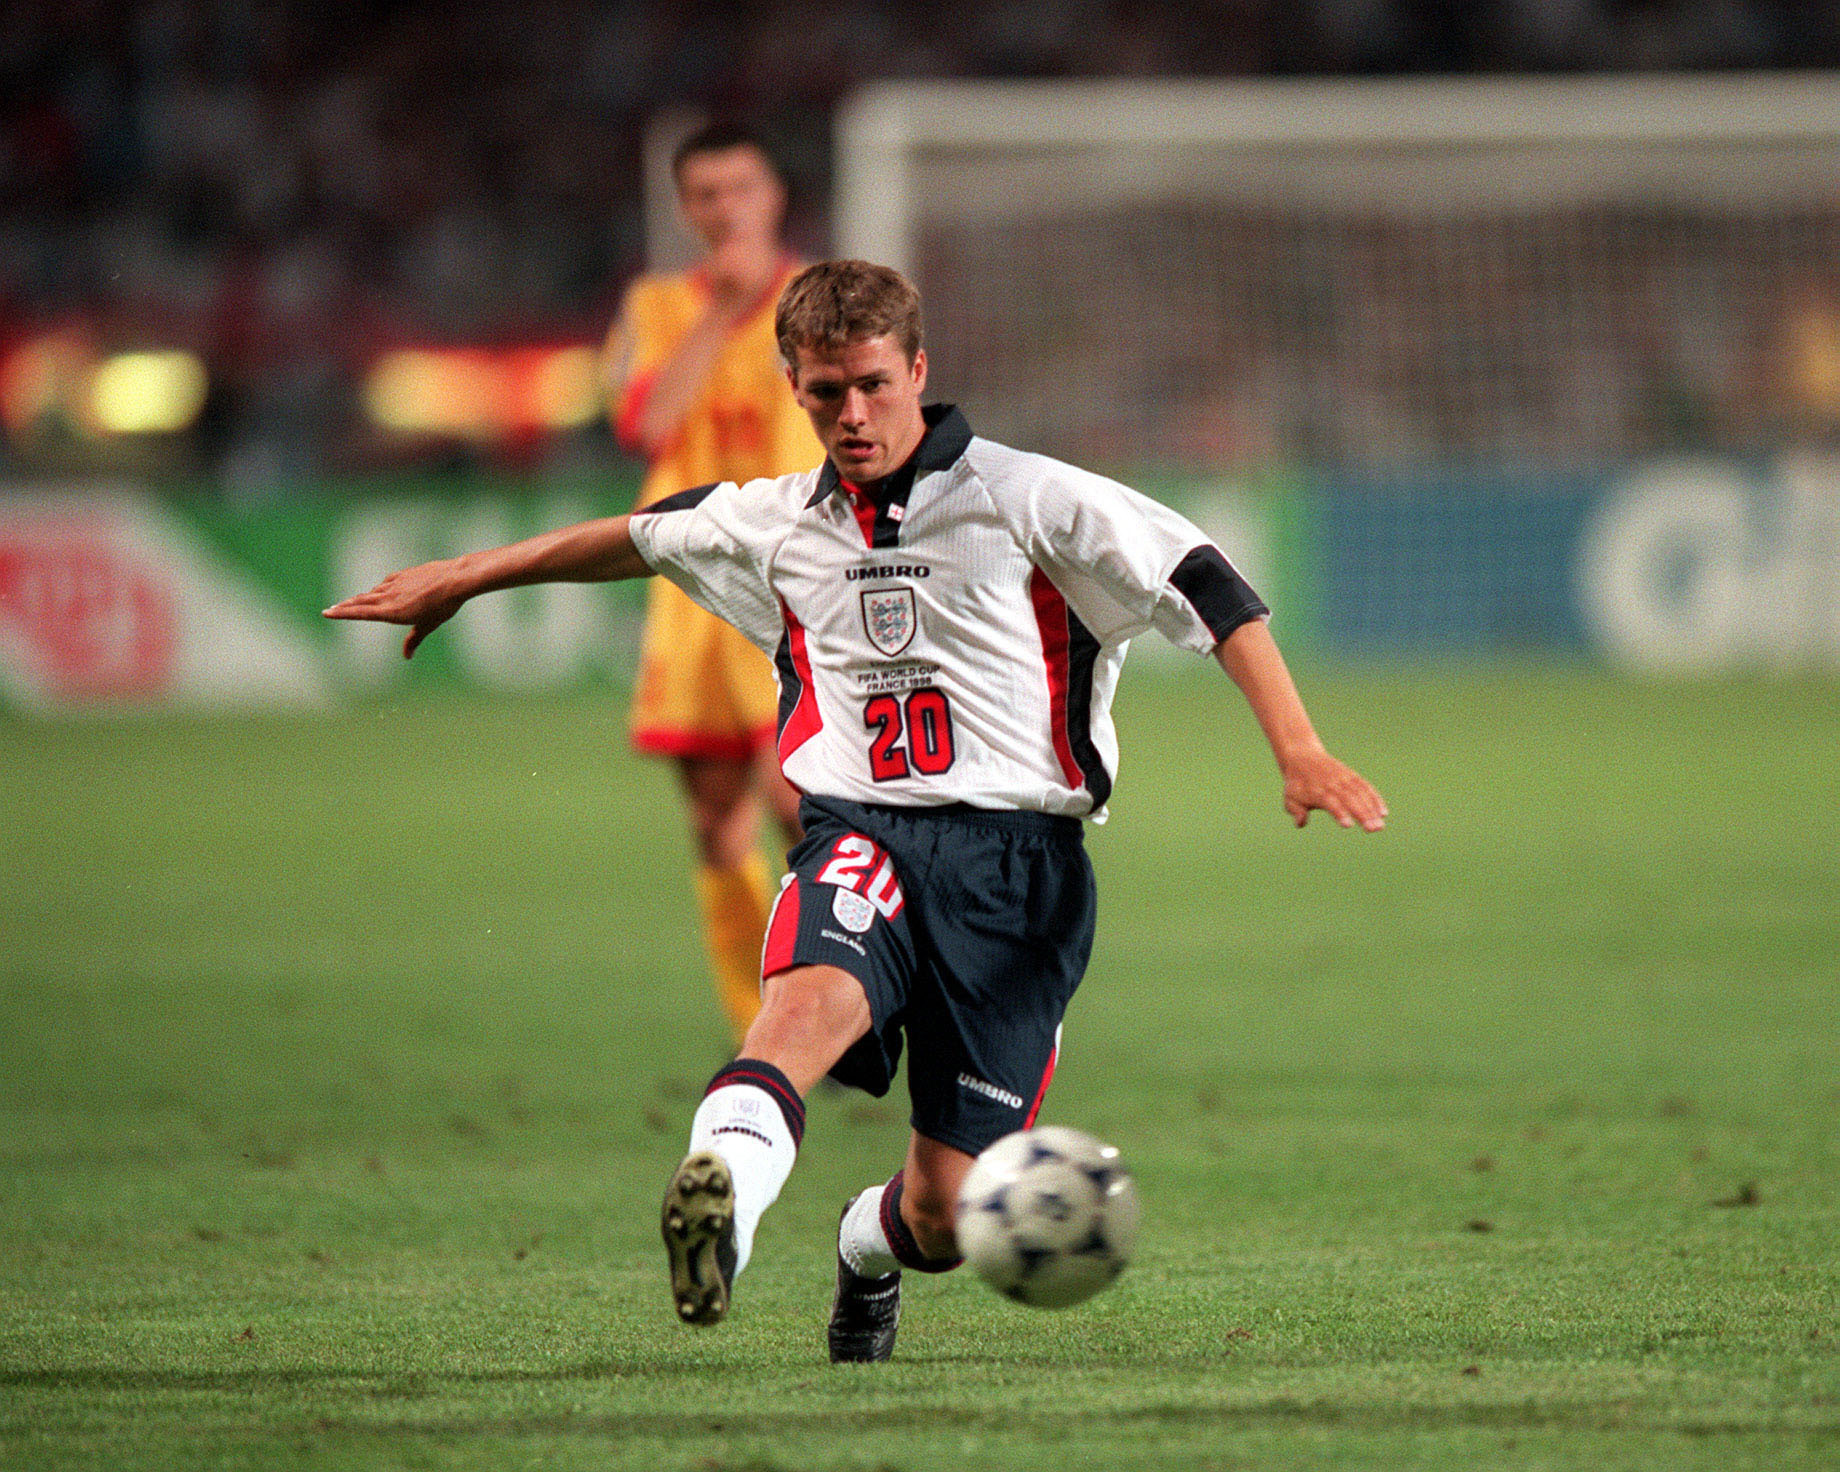 England's Michael Owen at the 1998 World Cup